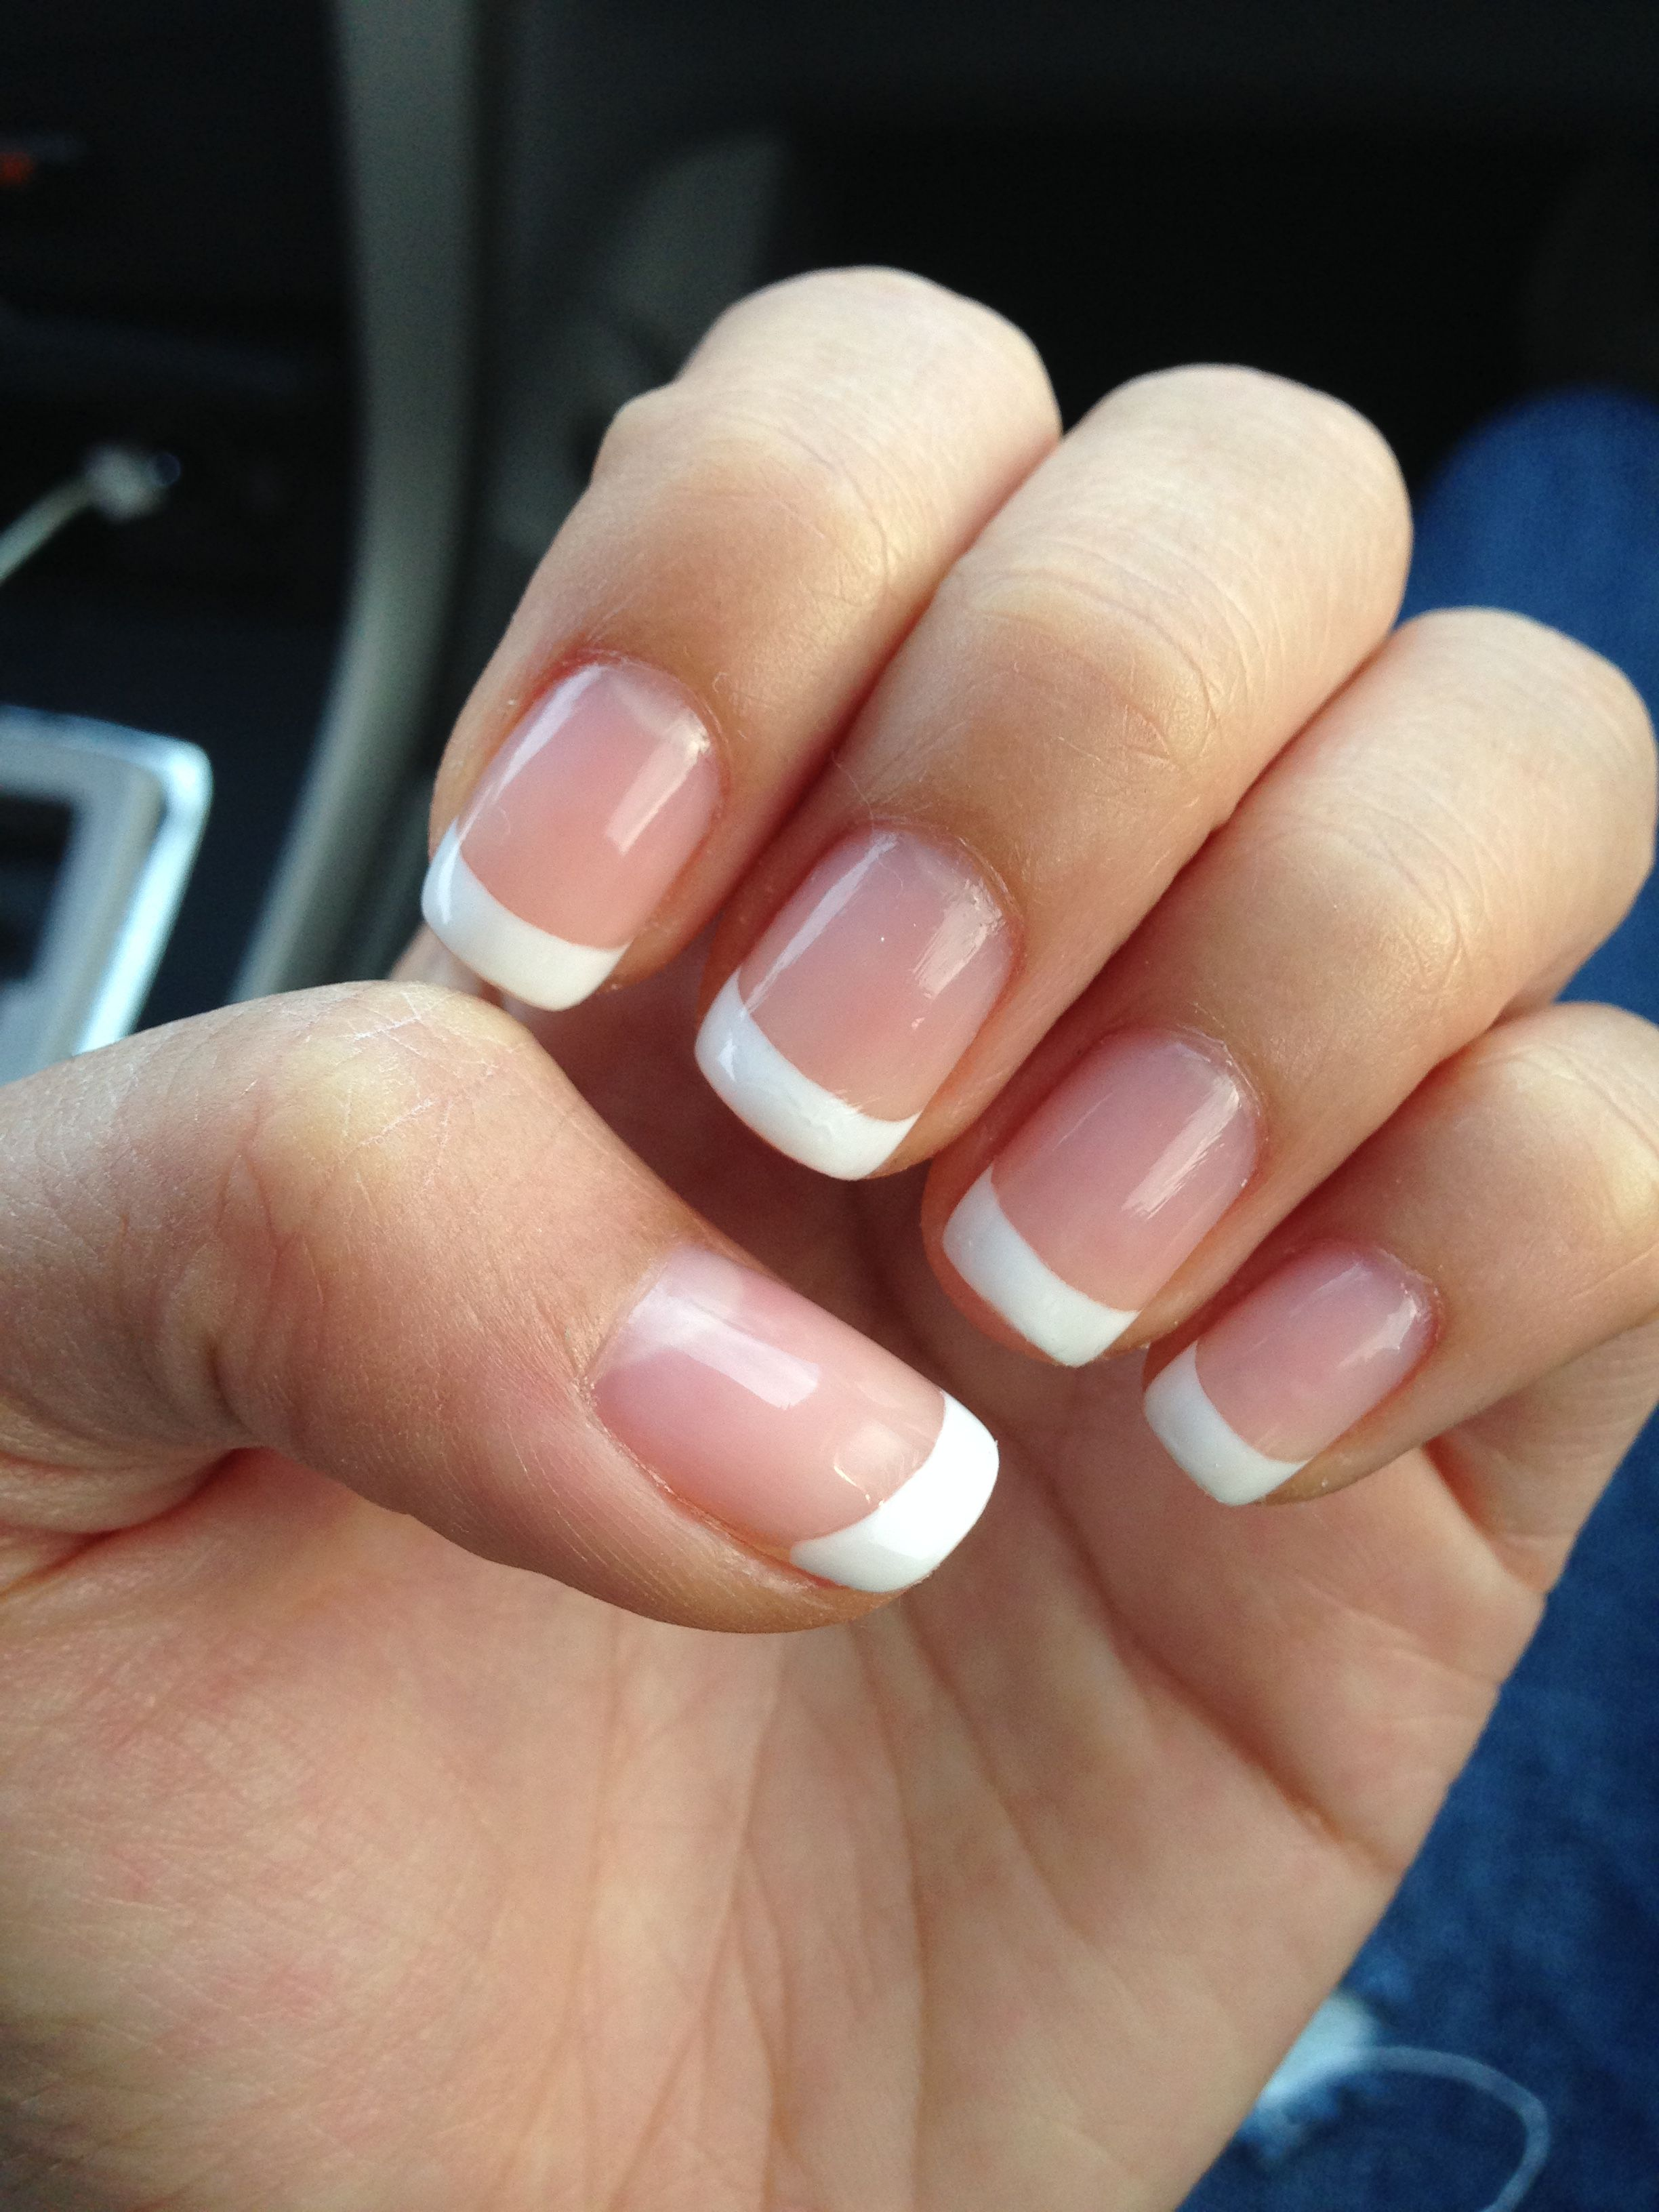 Gel Nails: French Tips Natural Look | Nails | Pinterest | Gel nails ...